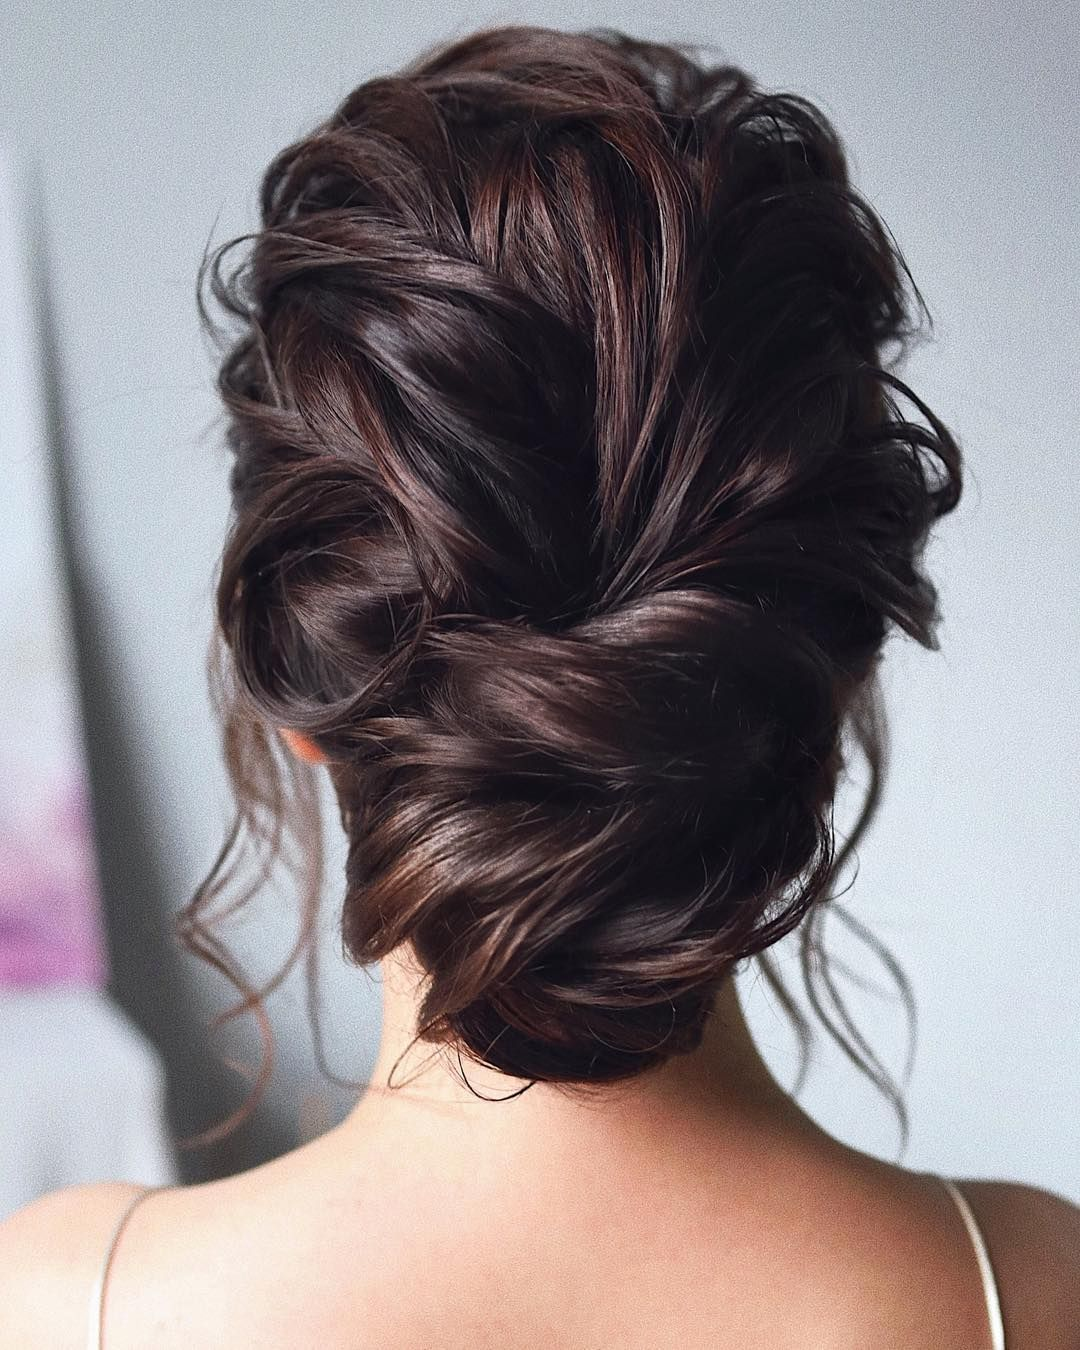 Top 20 Fabulous Updo Wedding Hairstyles: 20 Drop-Dead Bridal Updo Hairstyles Ideas From